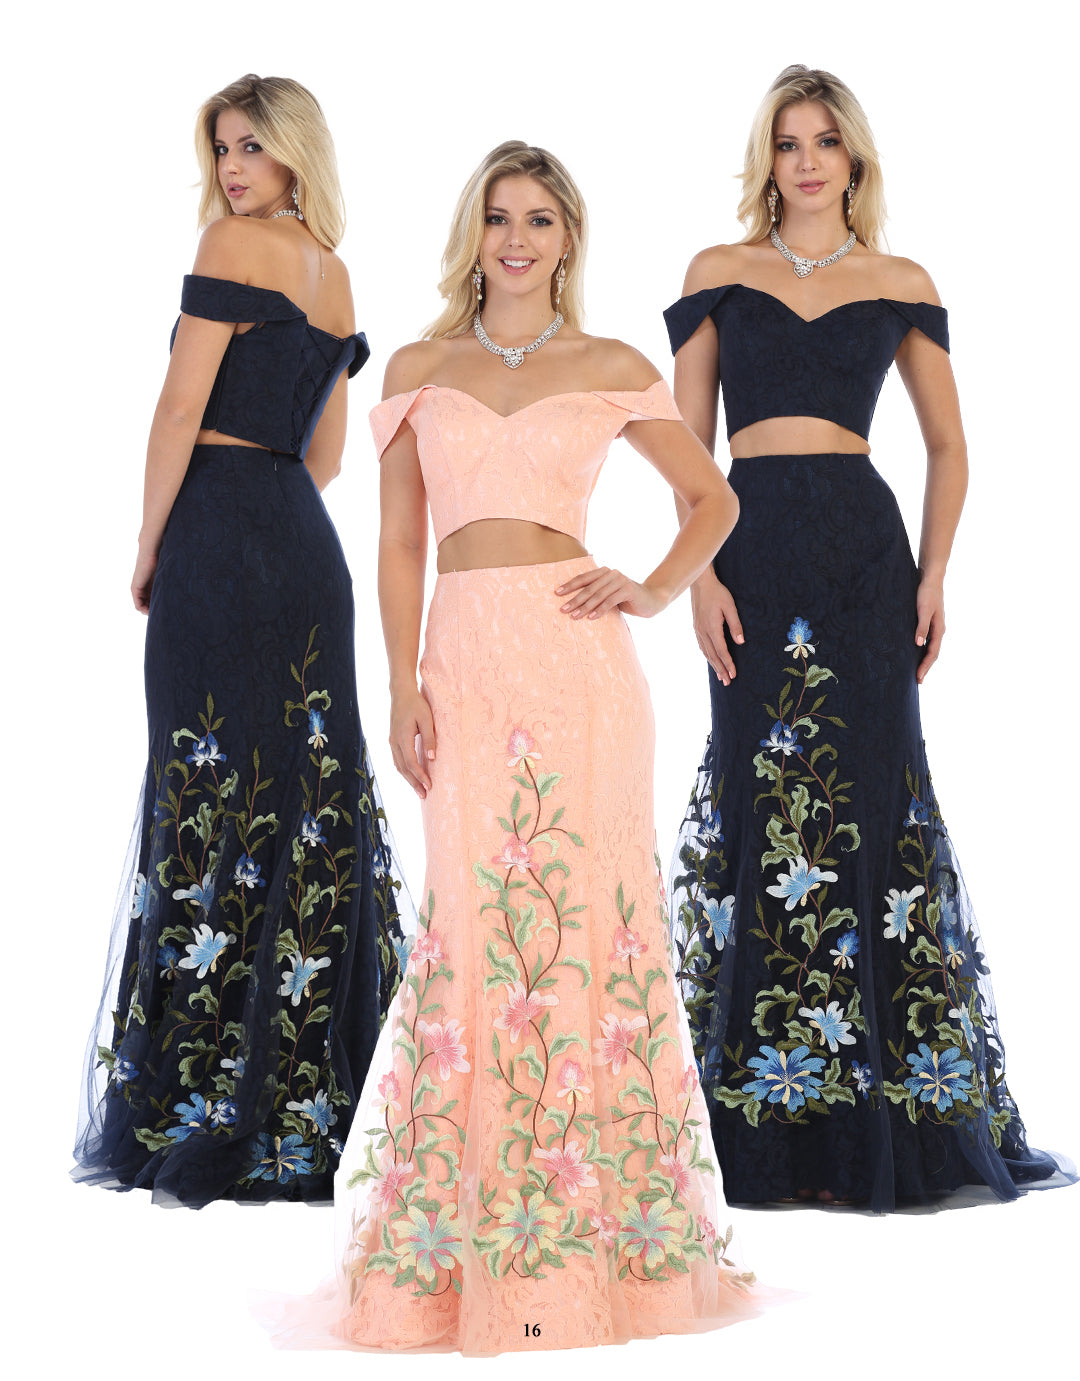 0d206183c55 Sexy Floral Lace Embroidered Two Piece Off Shoulder Dress